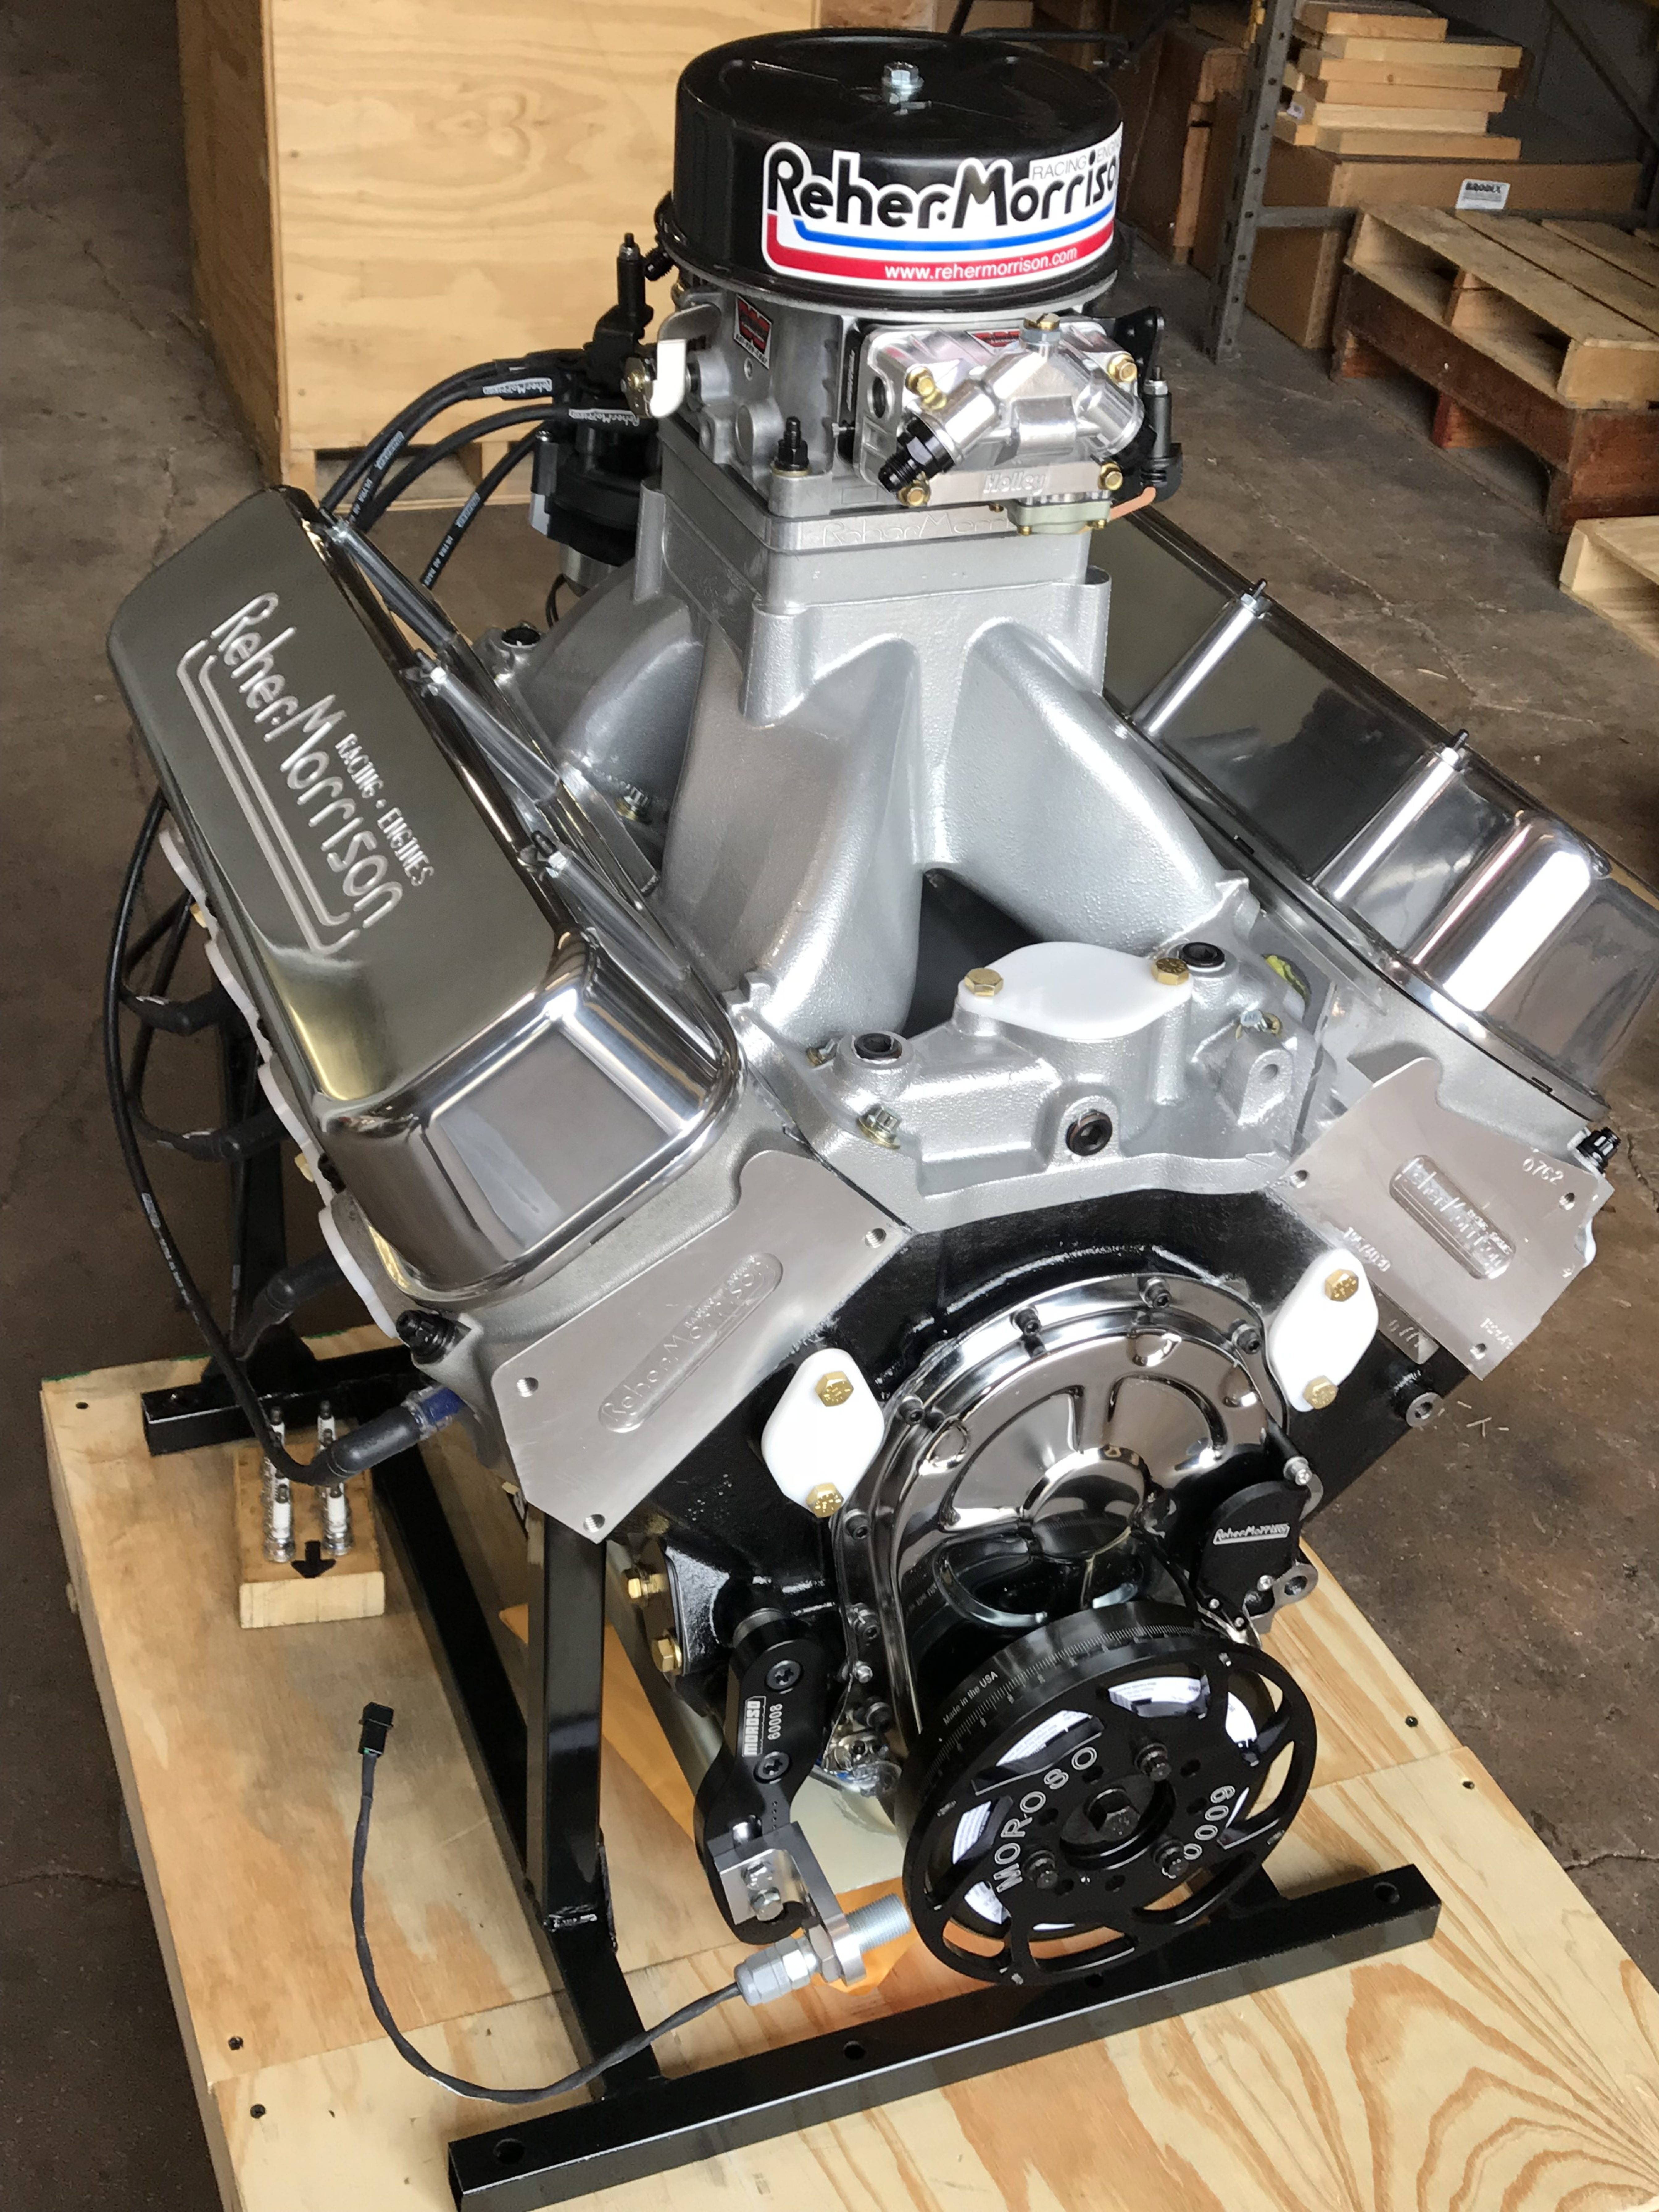 565ci Super Series-23º | Reher Morrison Racing Engines